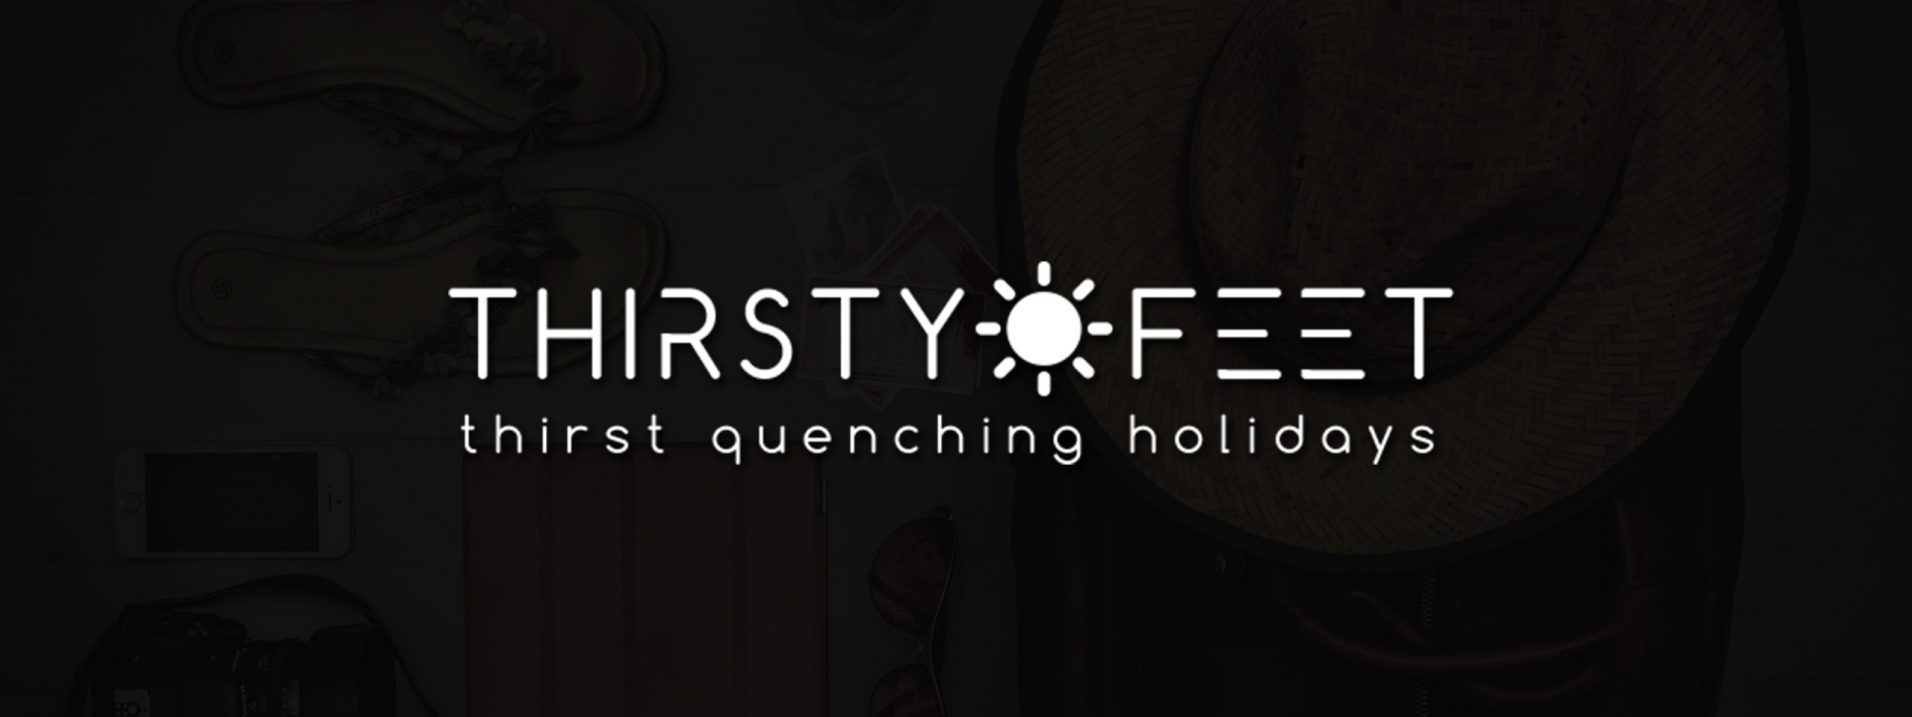 thirsty feet web portal design